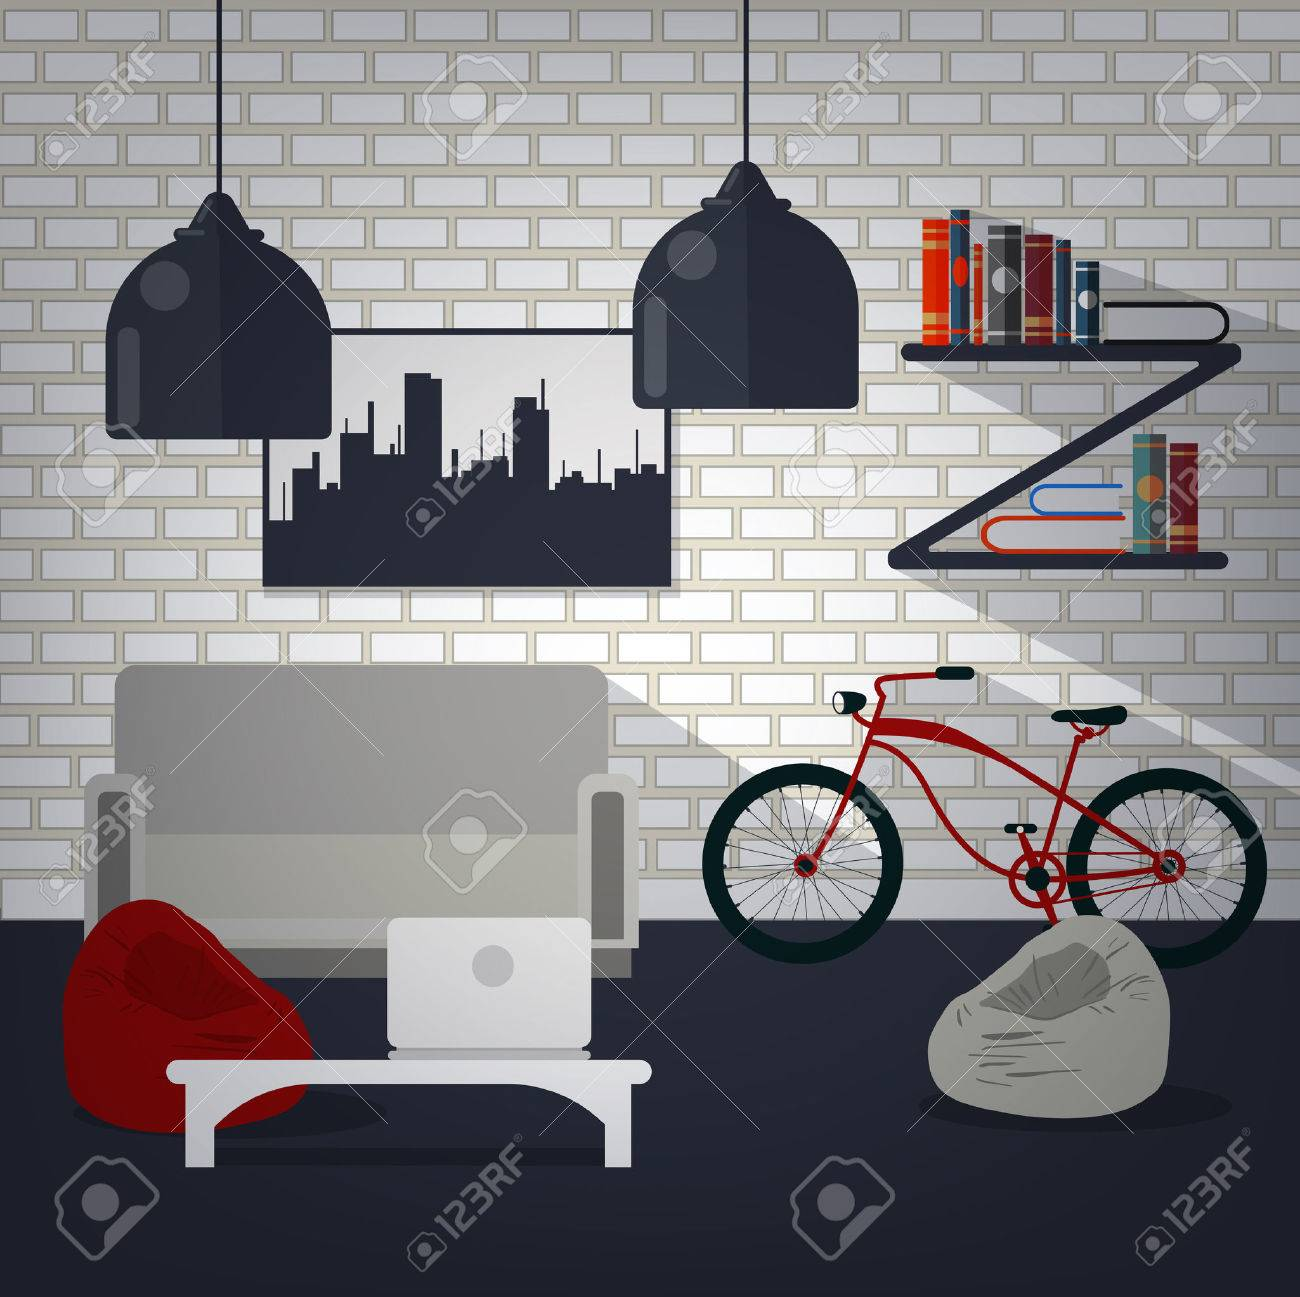 Modern Home Interior of Living Room with Bycicle, Books and Laptop. Home Sweet Home. Vector illustration in flat style Stock Vector - 52074495